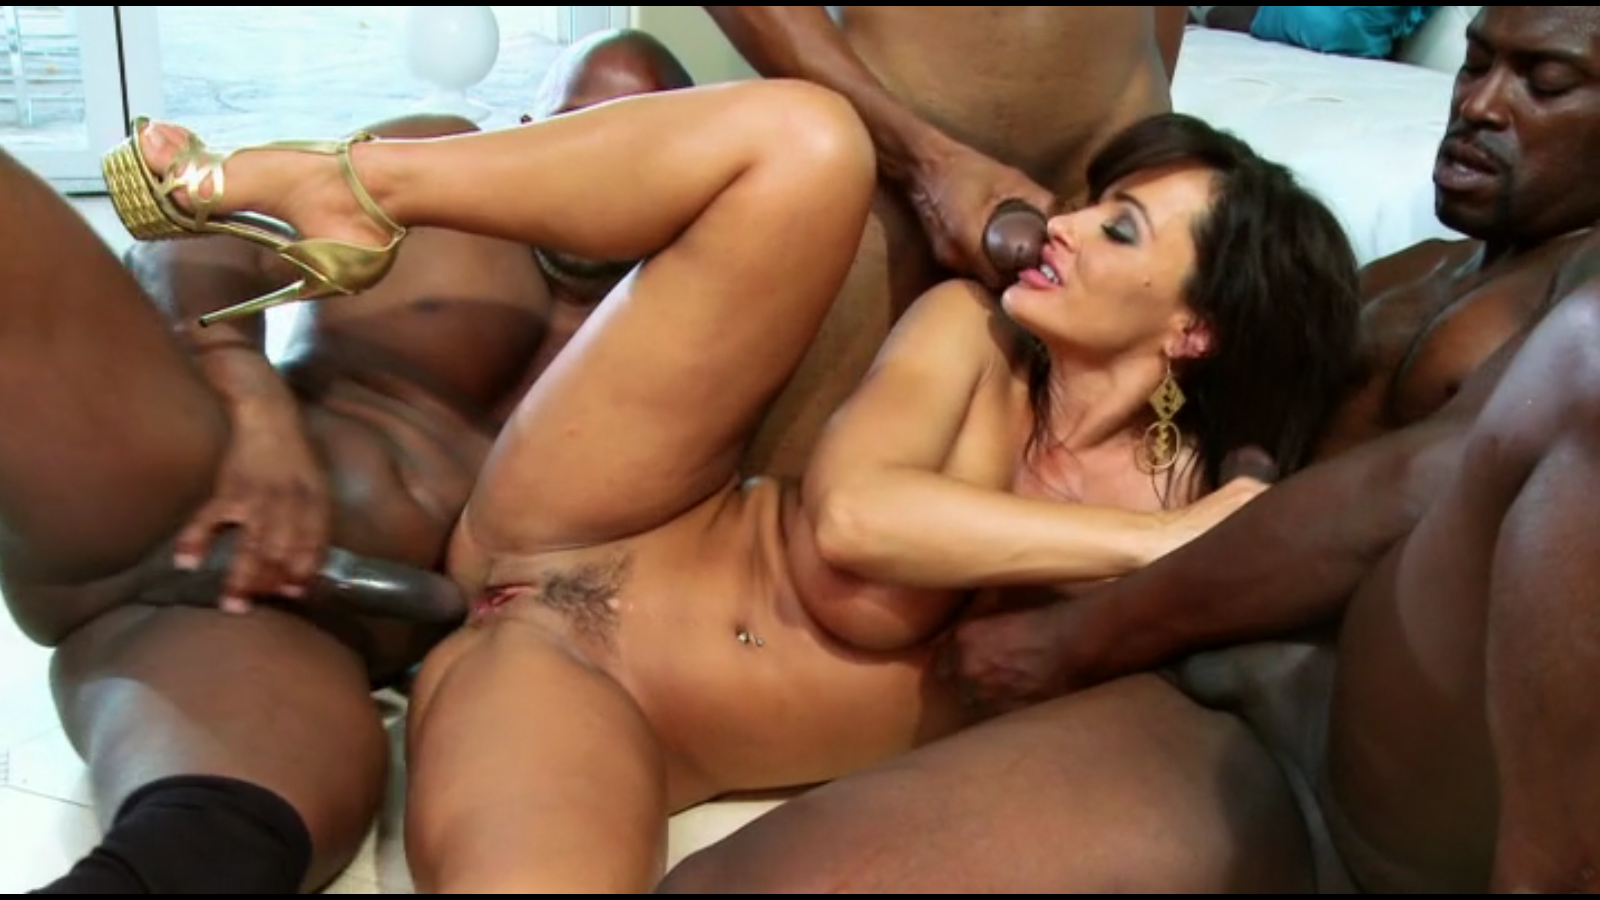 Forced anal sex italian girls